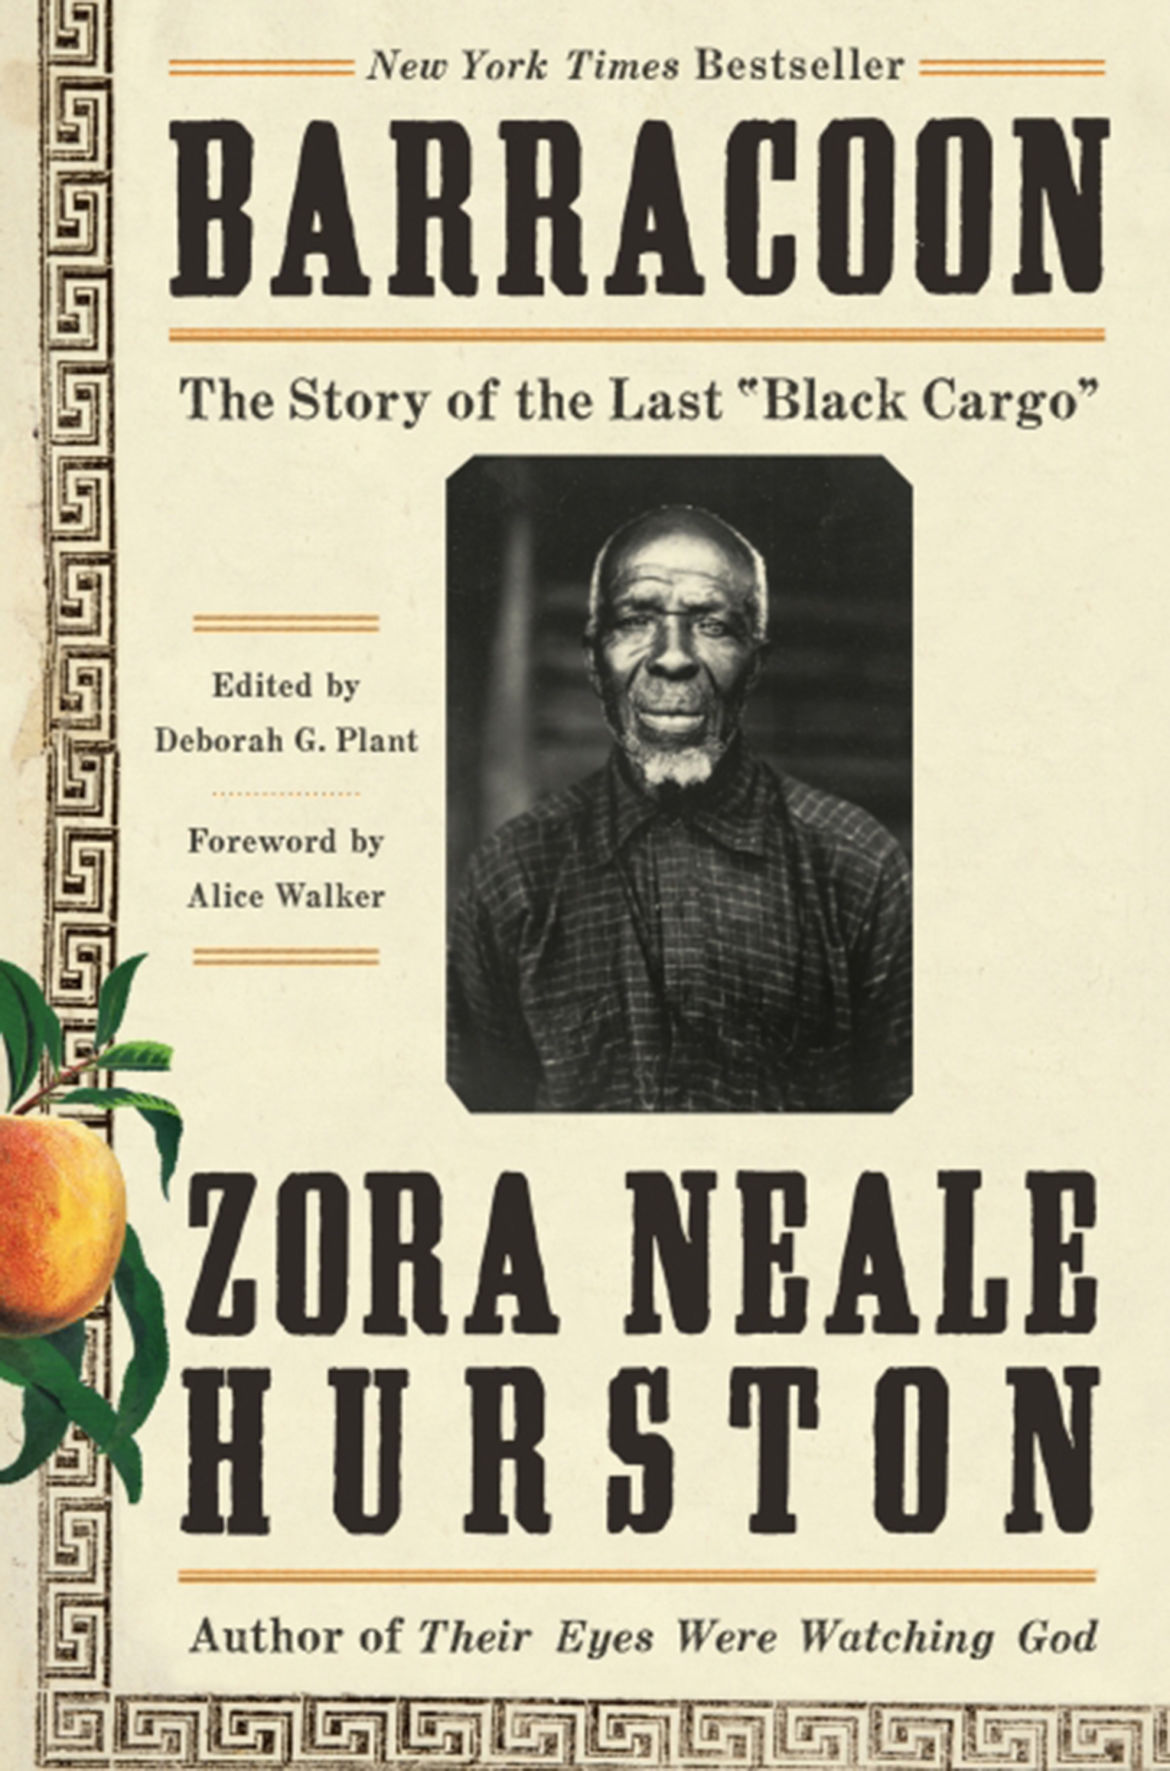 """""""Barracoon: The Story of the Last 'Black Cargo'"""" by Zora Neale Hurston"""